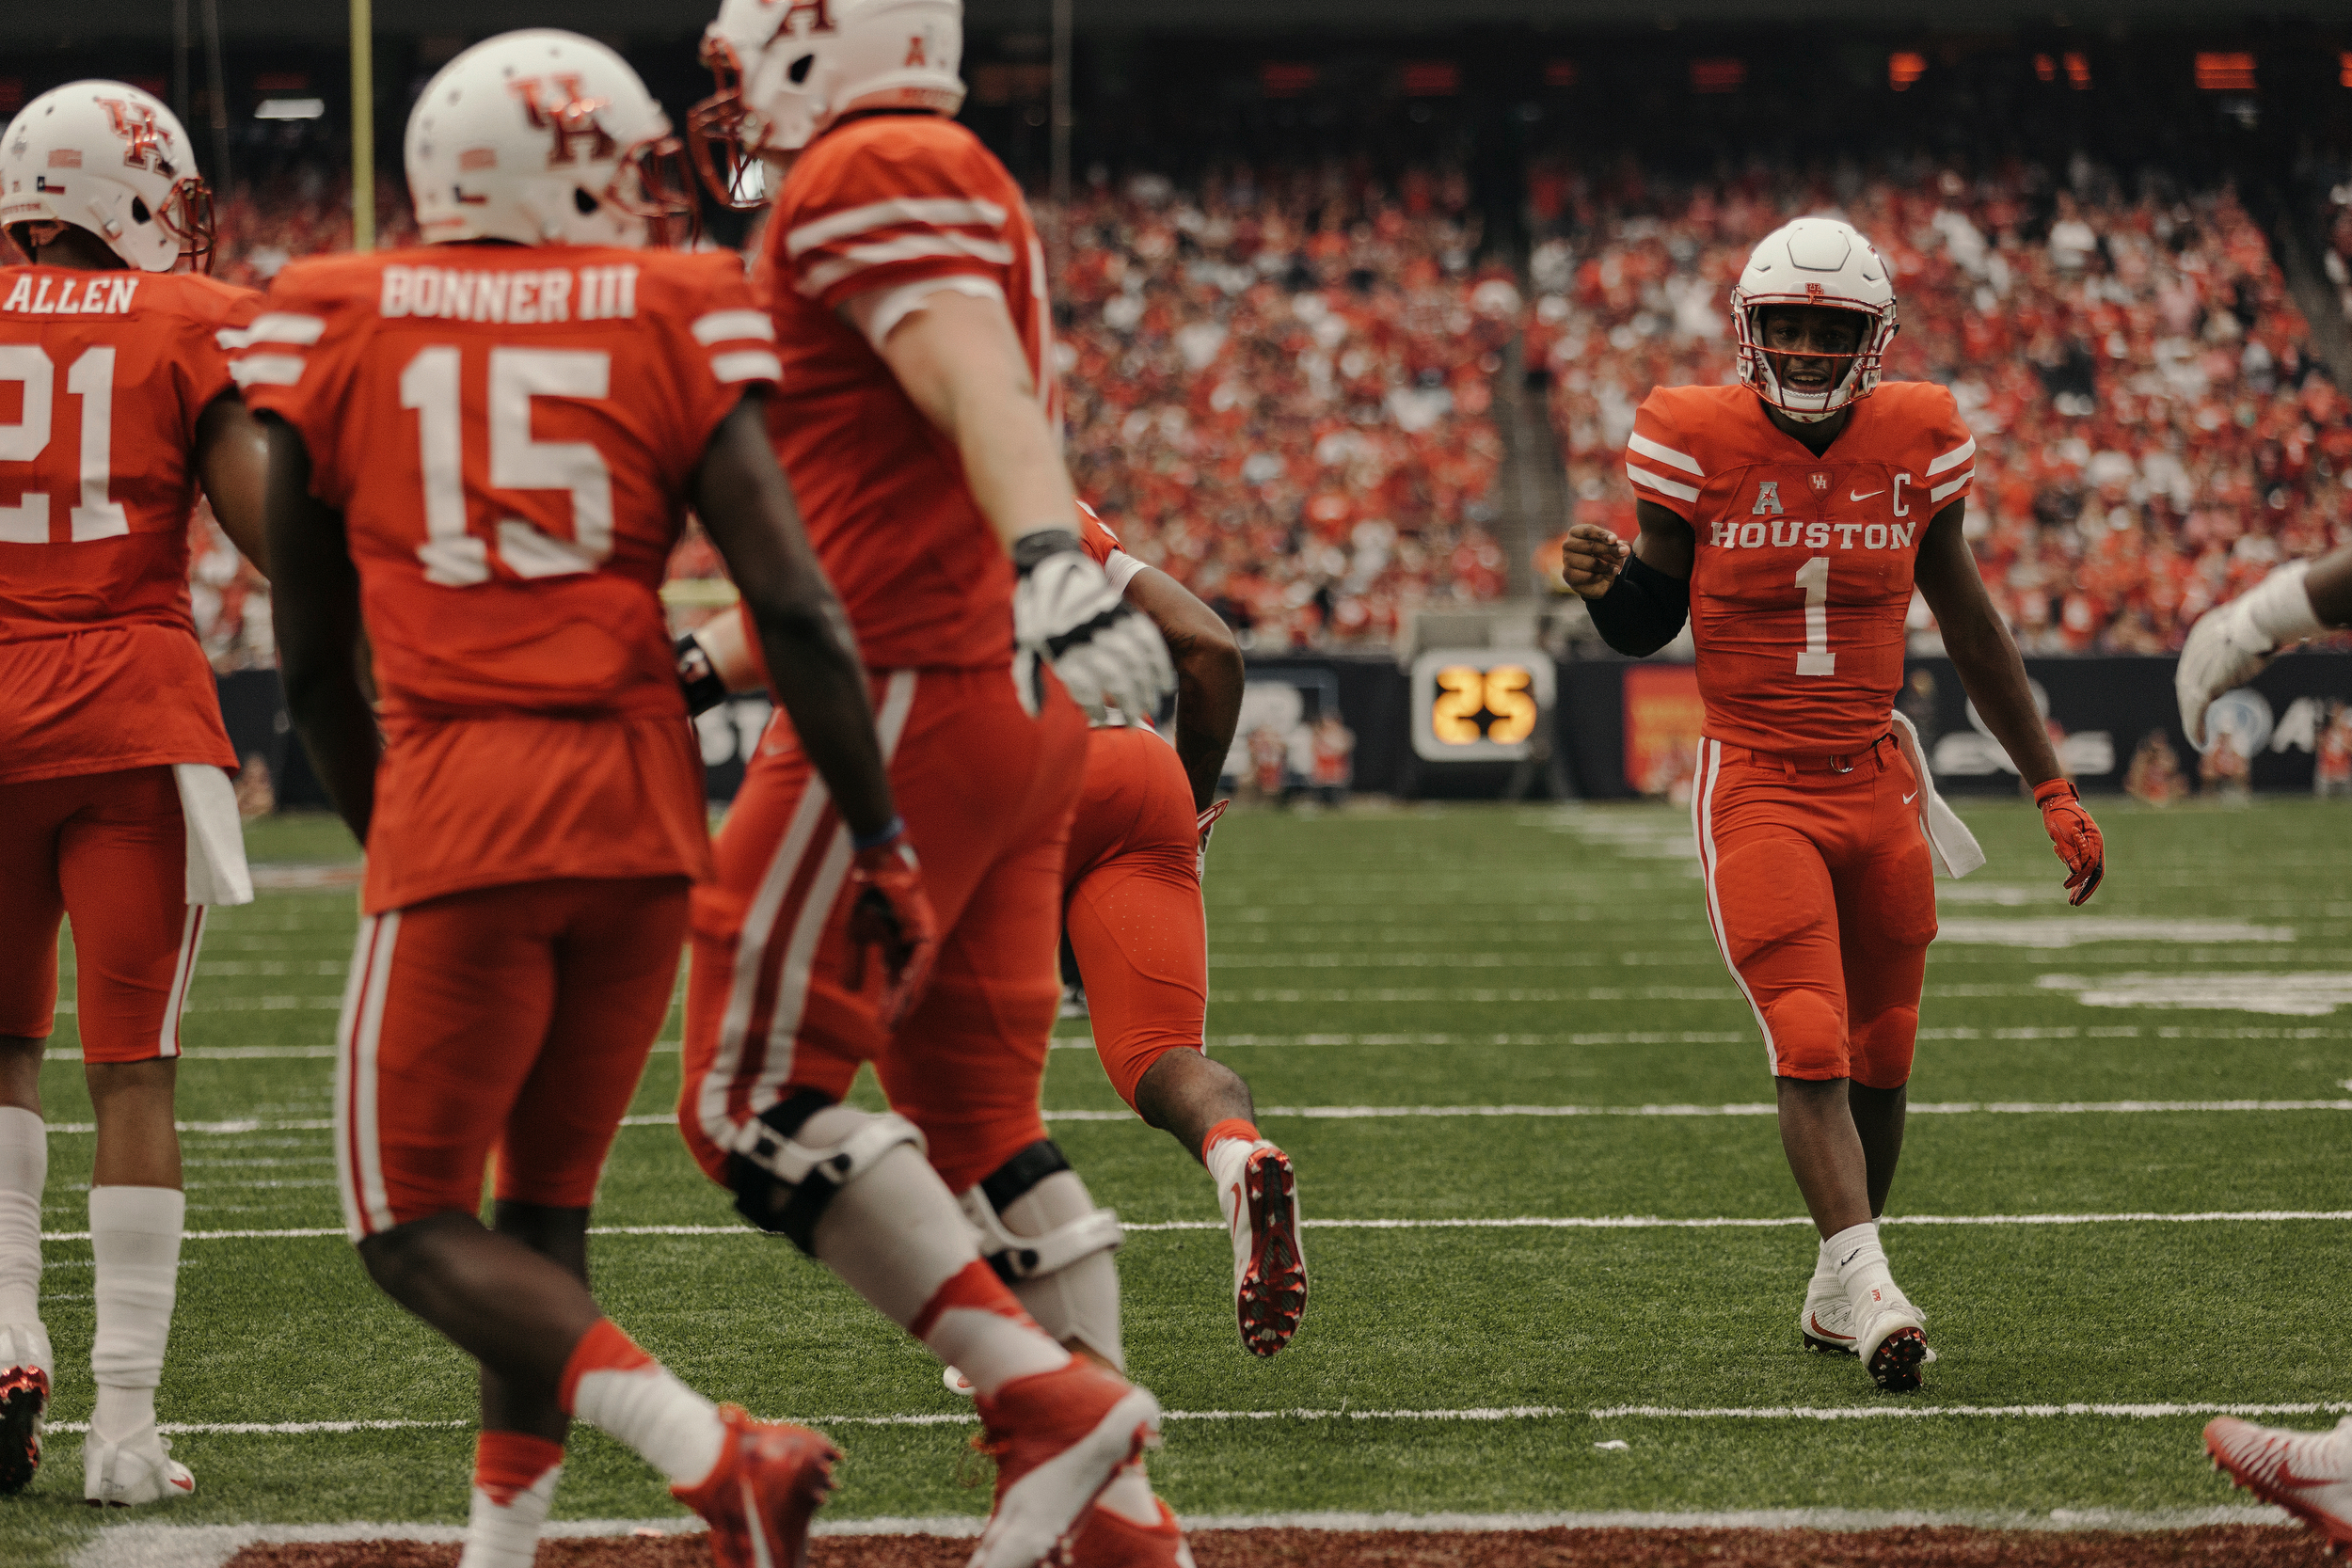 University of Houston quarterback, Greg Ward Jr., Celebrates an early touchdown with his teammates. Todd Spoth for The New York Times.